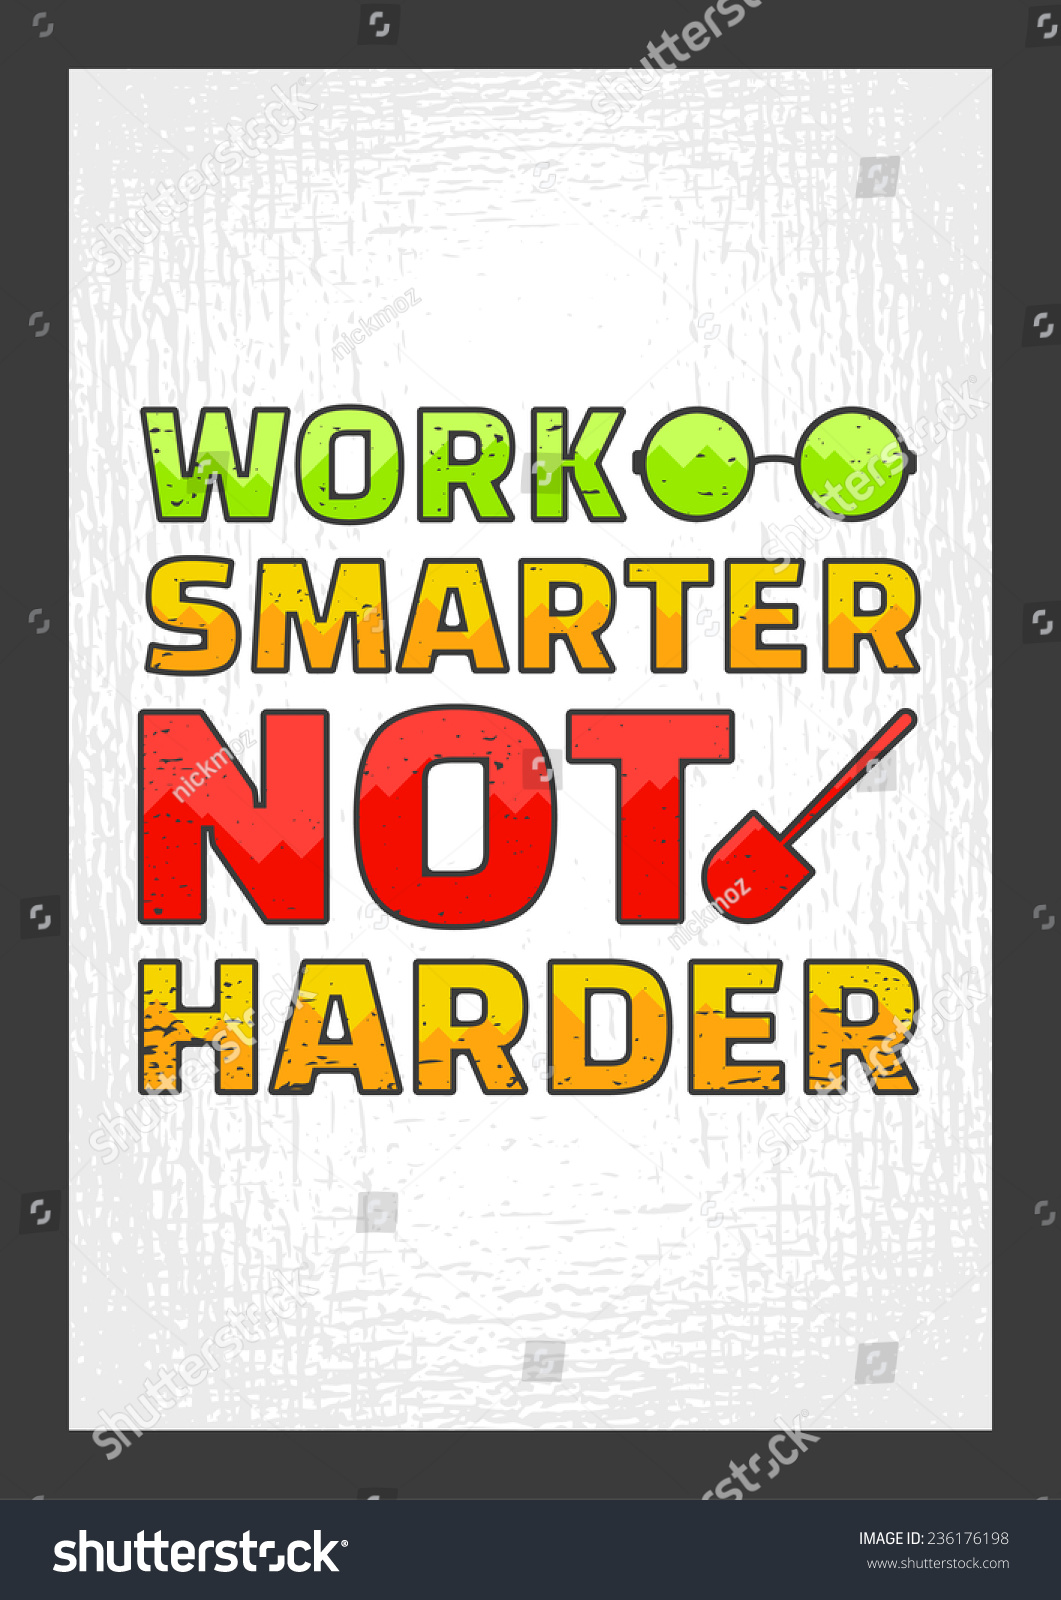 Motivational Quote For Work Work Smarter Not Harder Motivational Quote Stock Vector 236176198